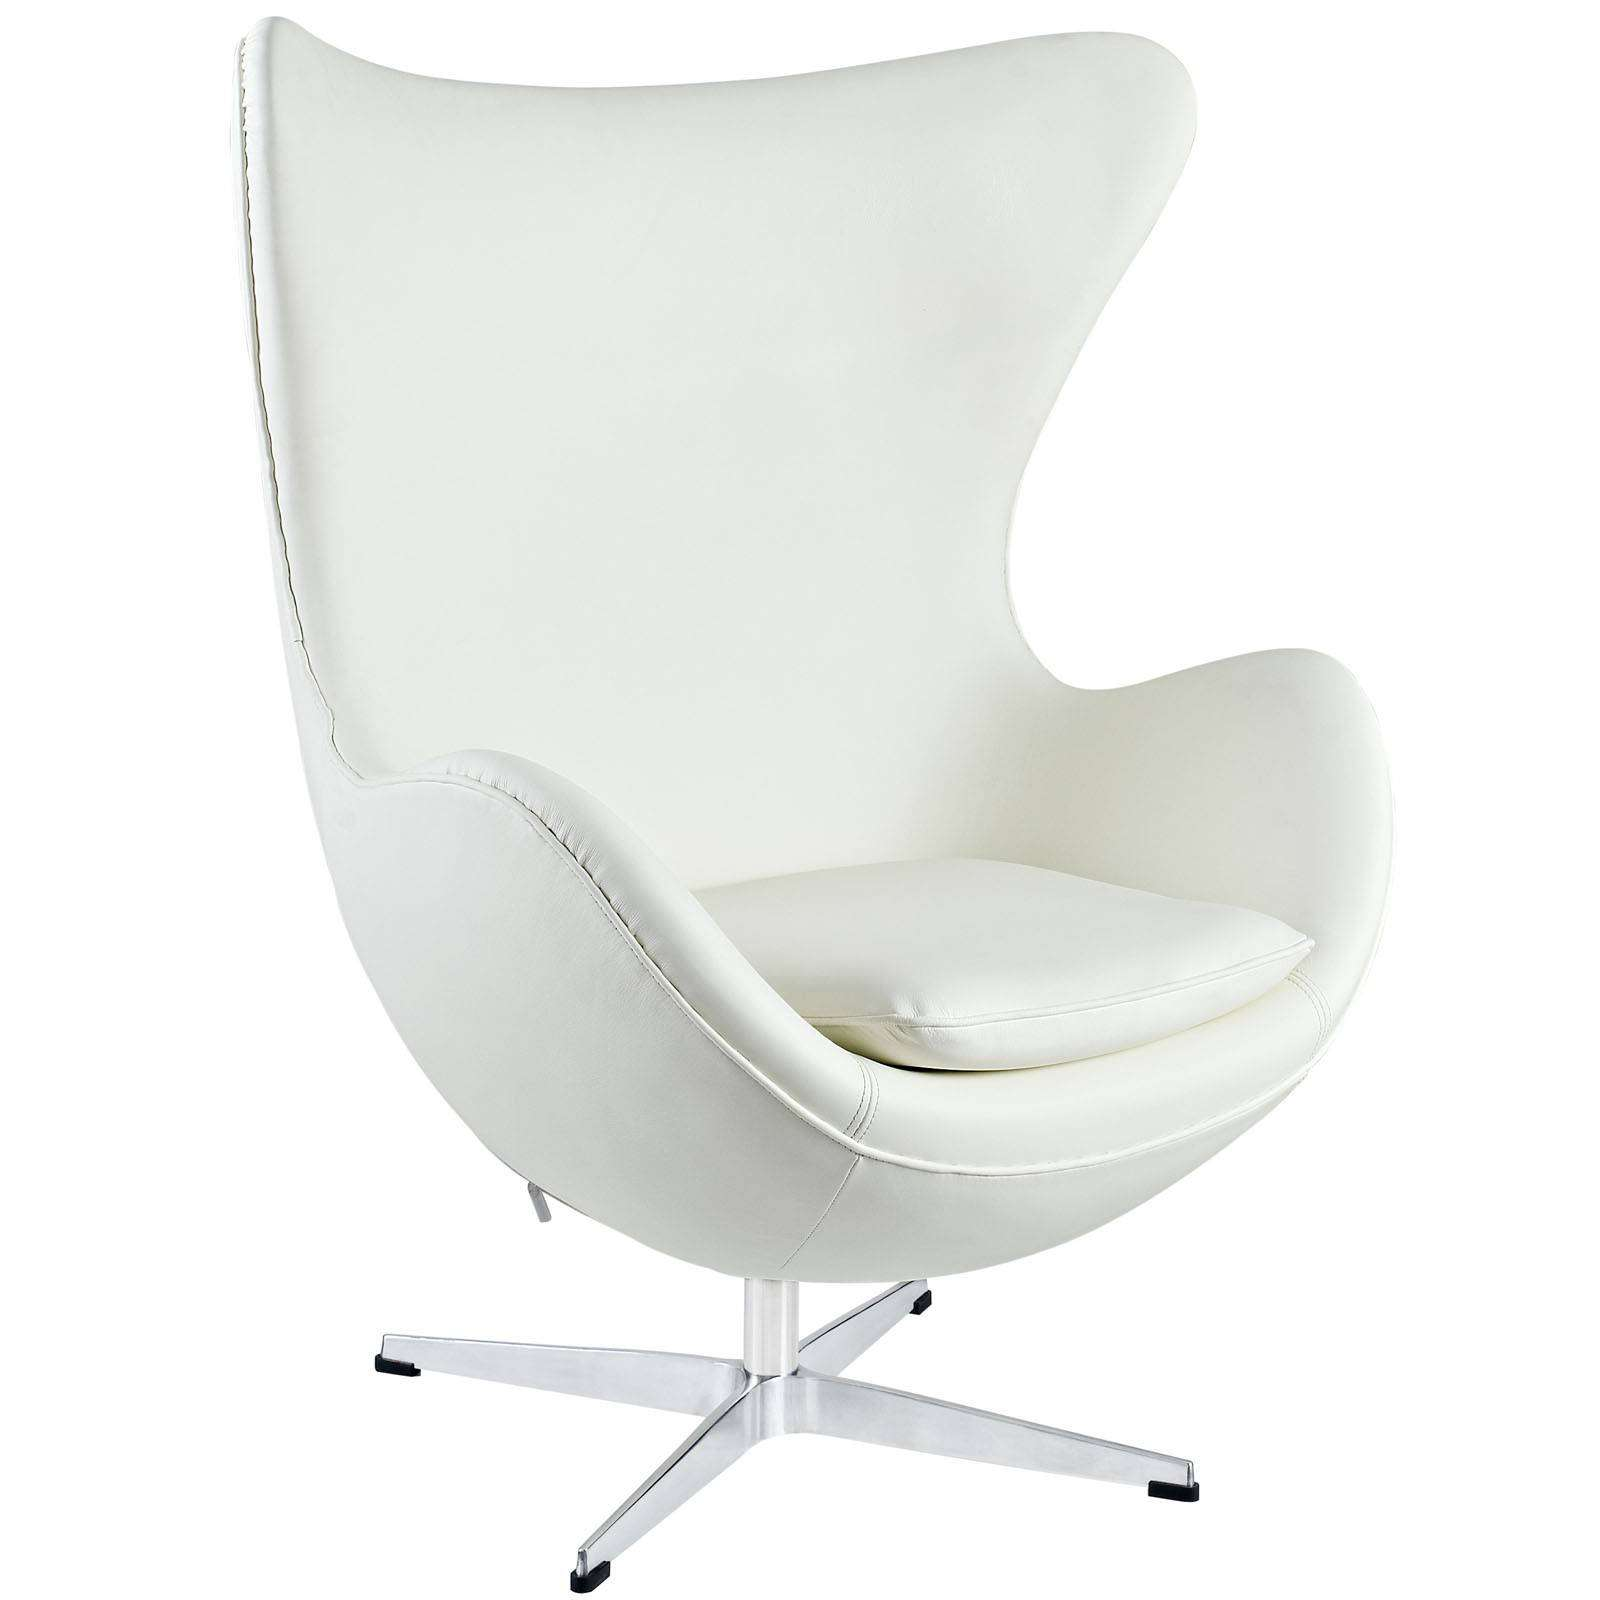 Chair Egg Arne Jacobson Style Egg Chair Leather